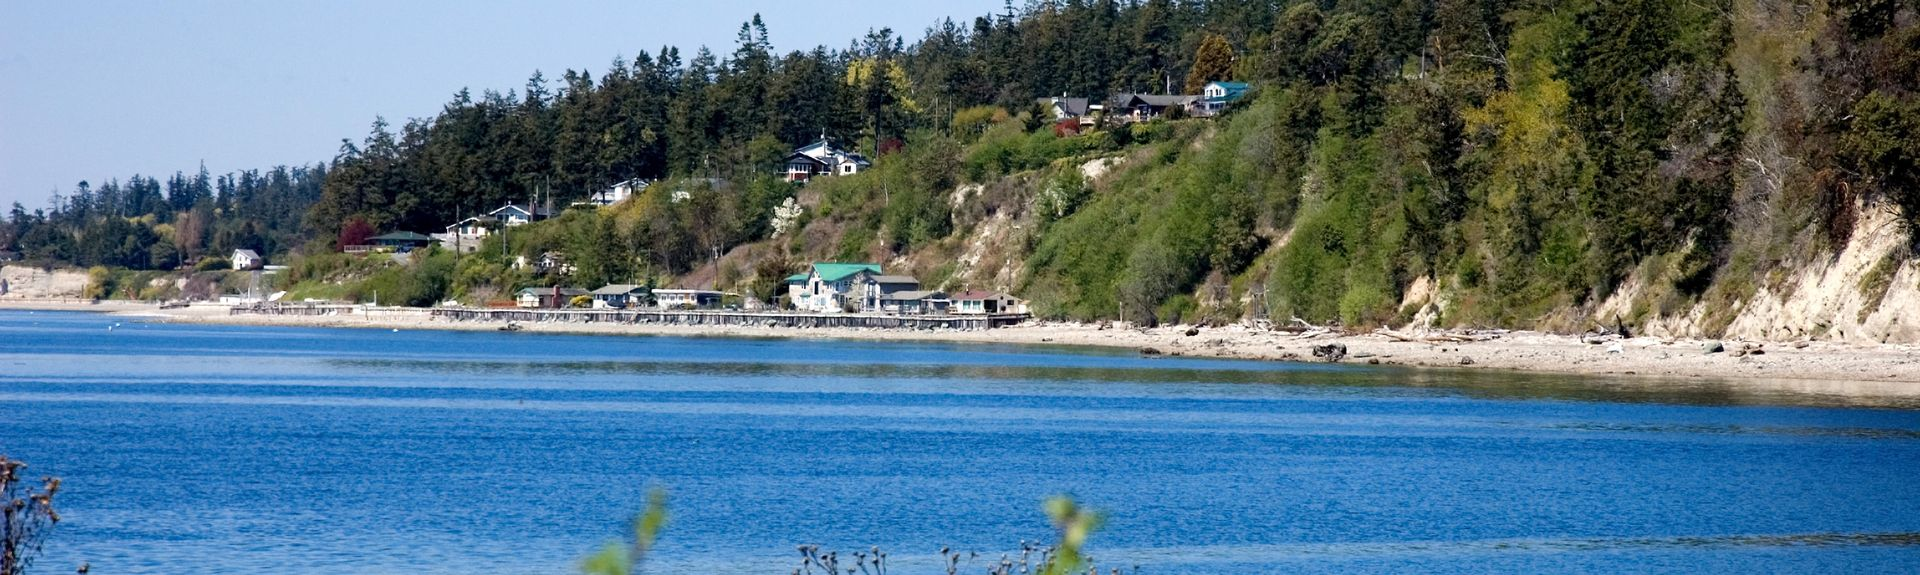 Camano Island State Park Weather Vrbo Camano Island Wa Vacation Rentals Reviews Booking